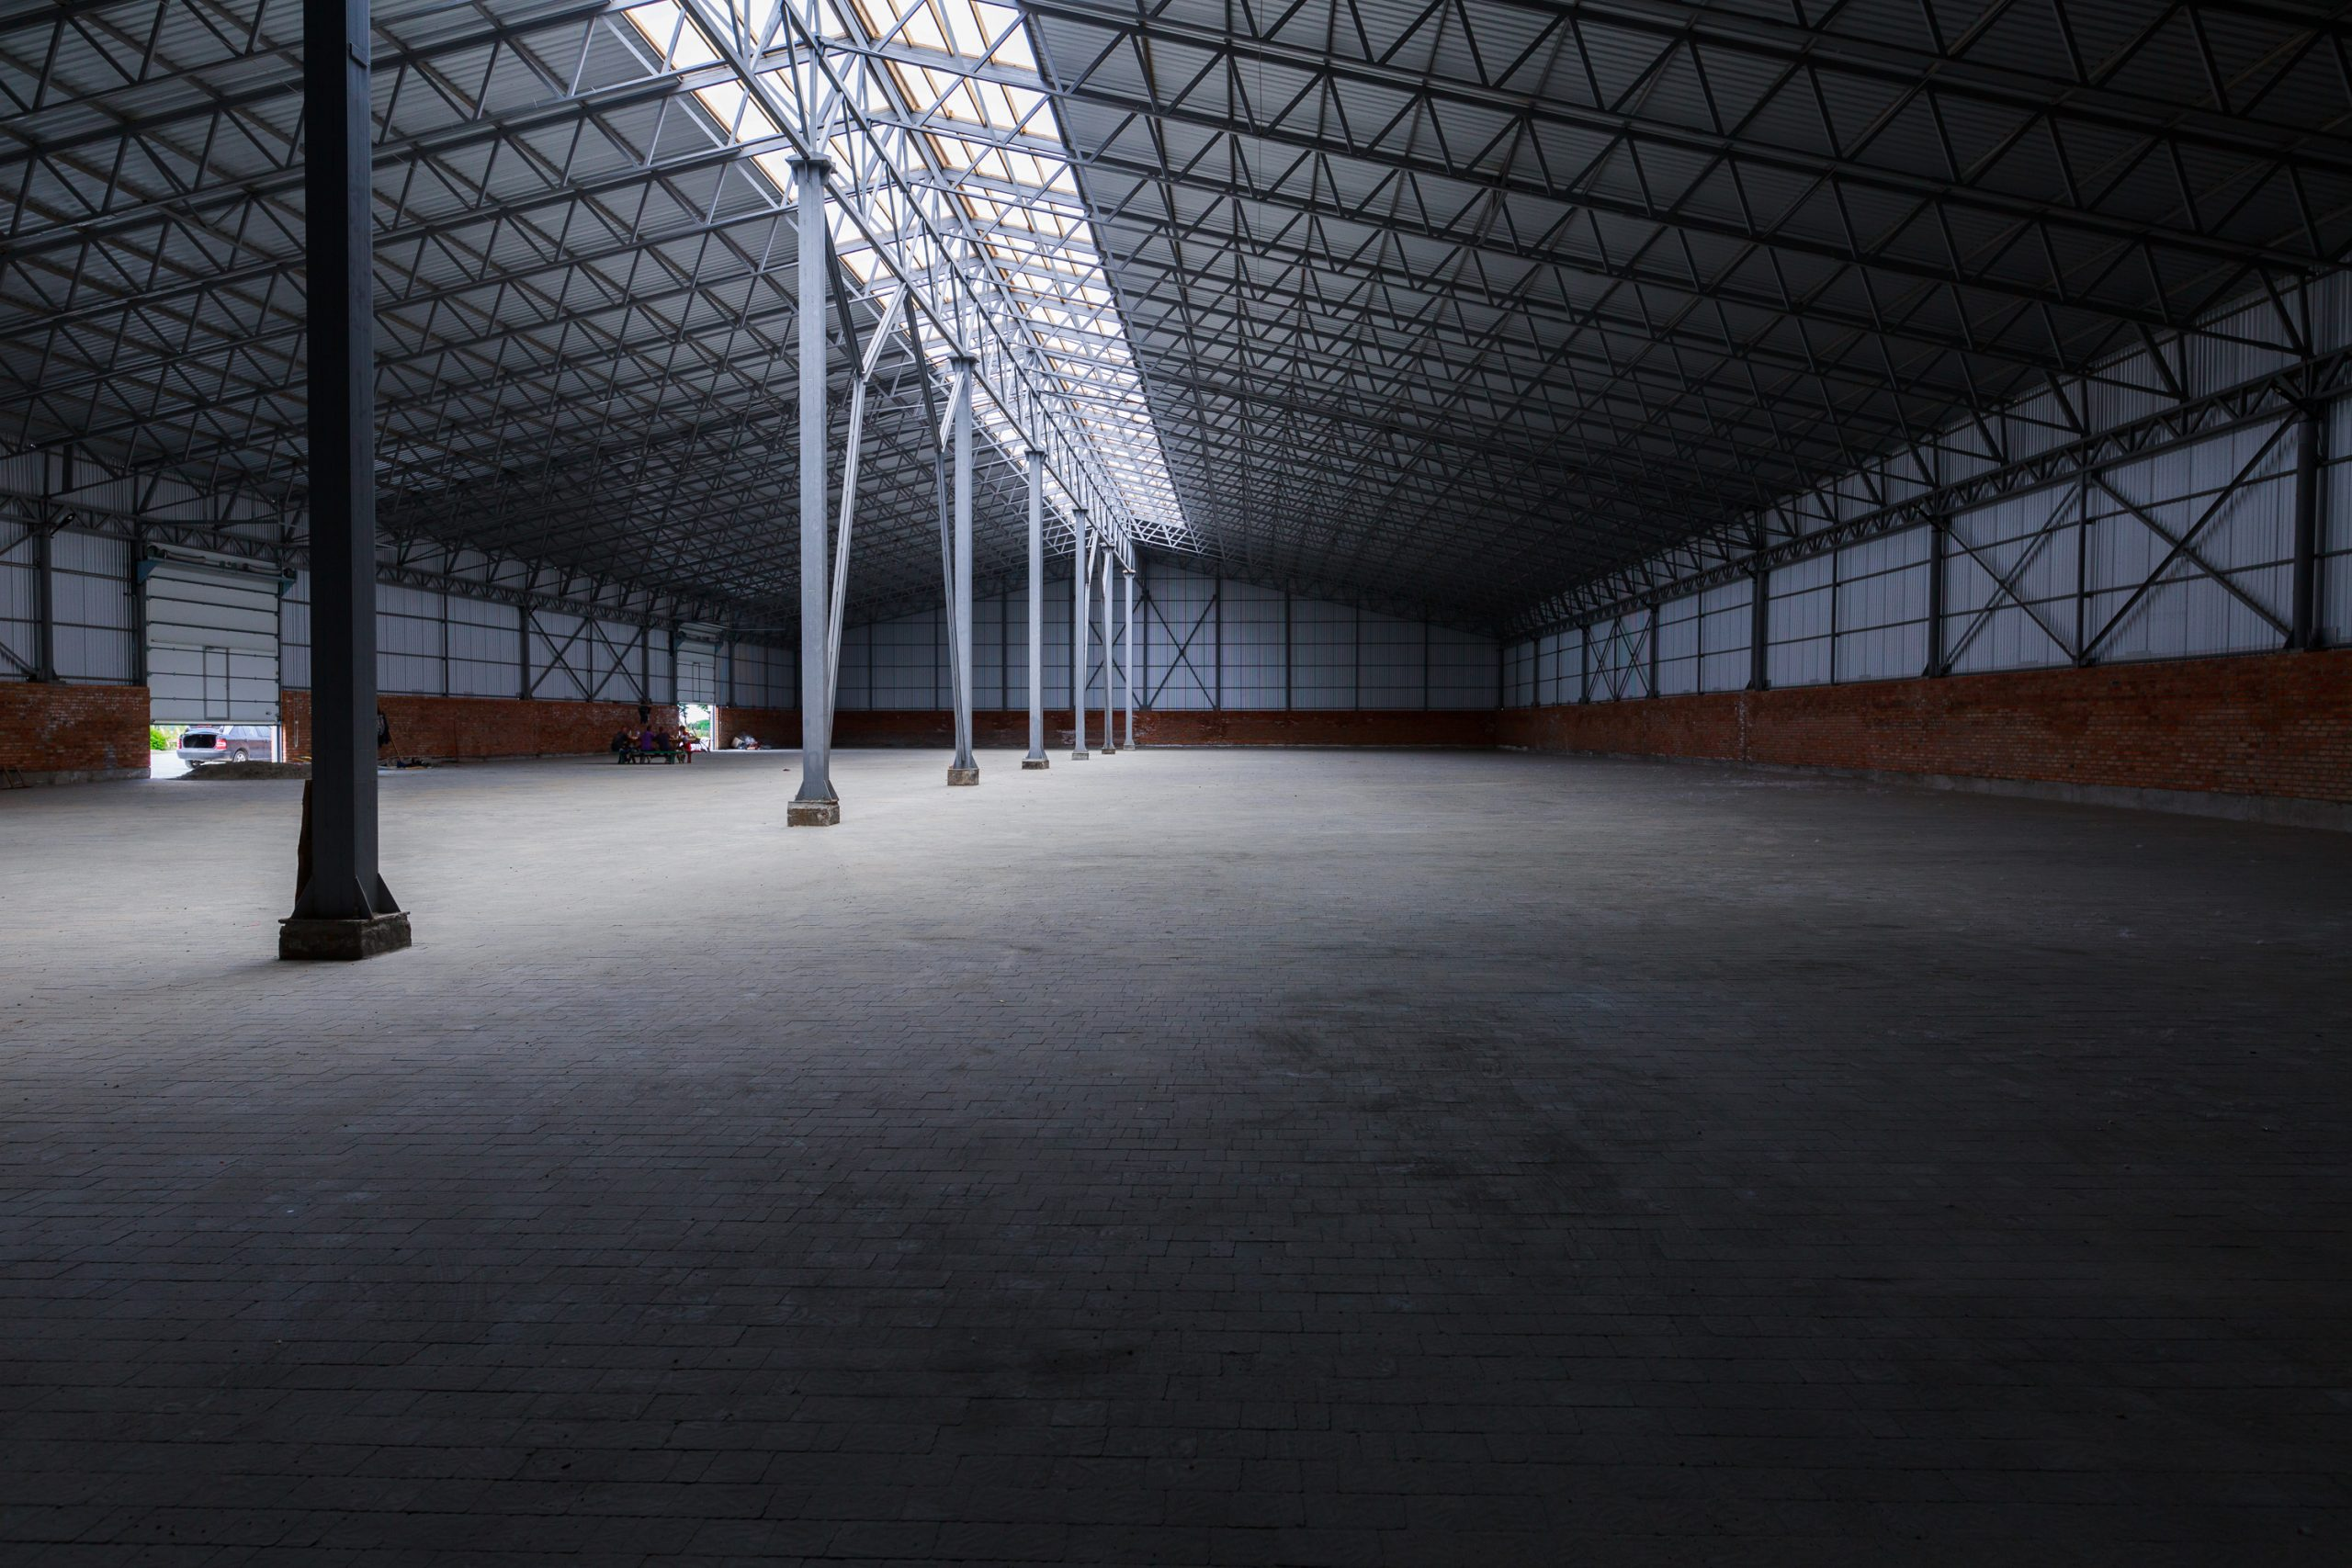 Large Pre-engineered Metal Building Interior With Lighting And Steel Beams